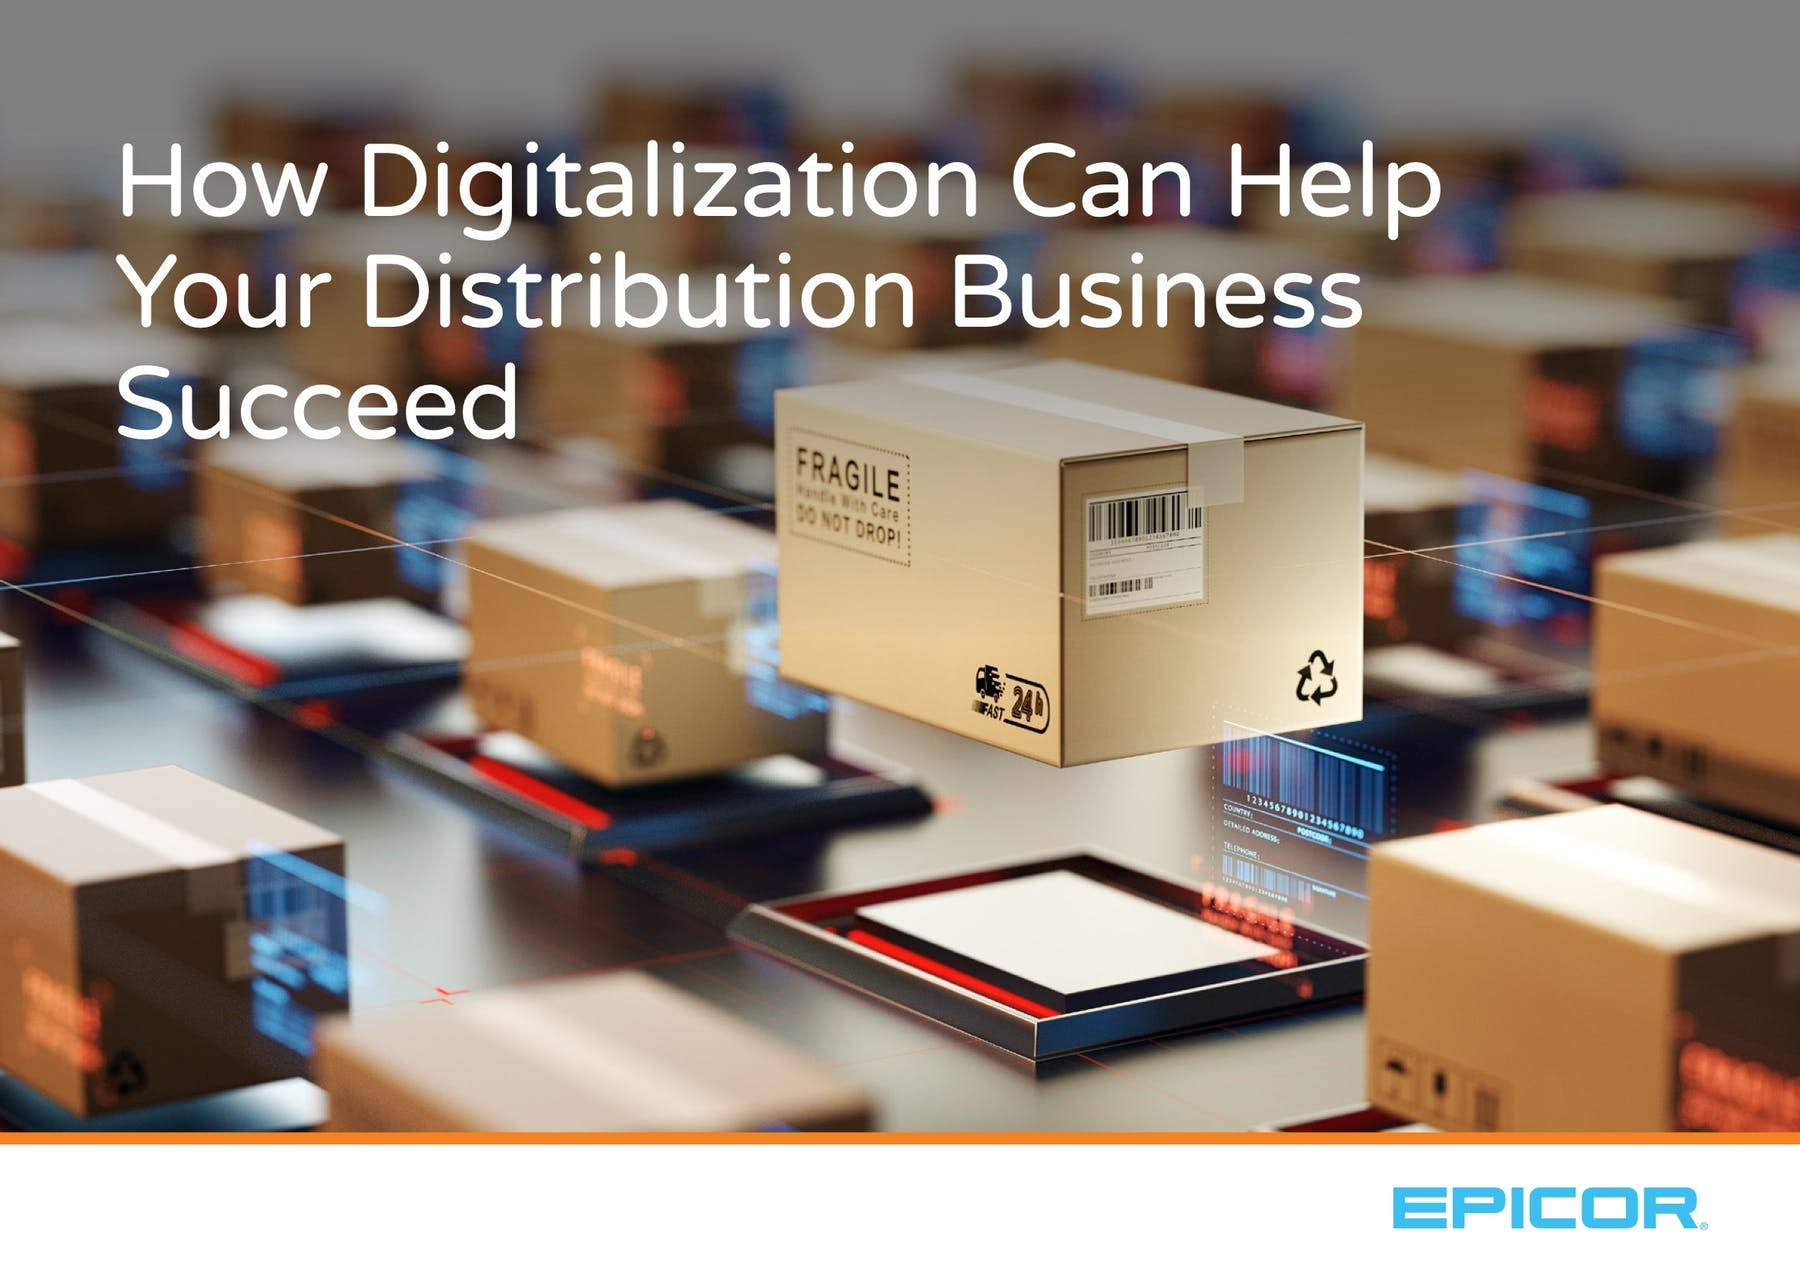 Epicor Prophet 21 White Paper - How Digitalization Can Help Your Distribution Business Succeed